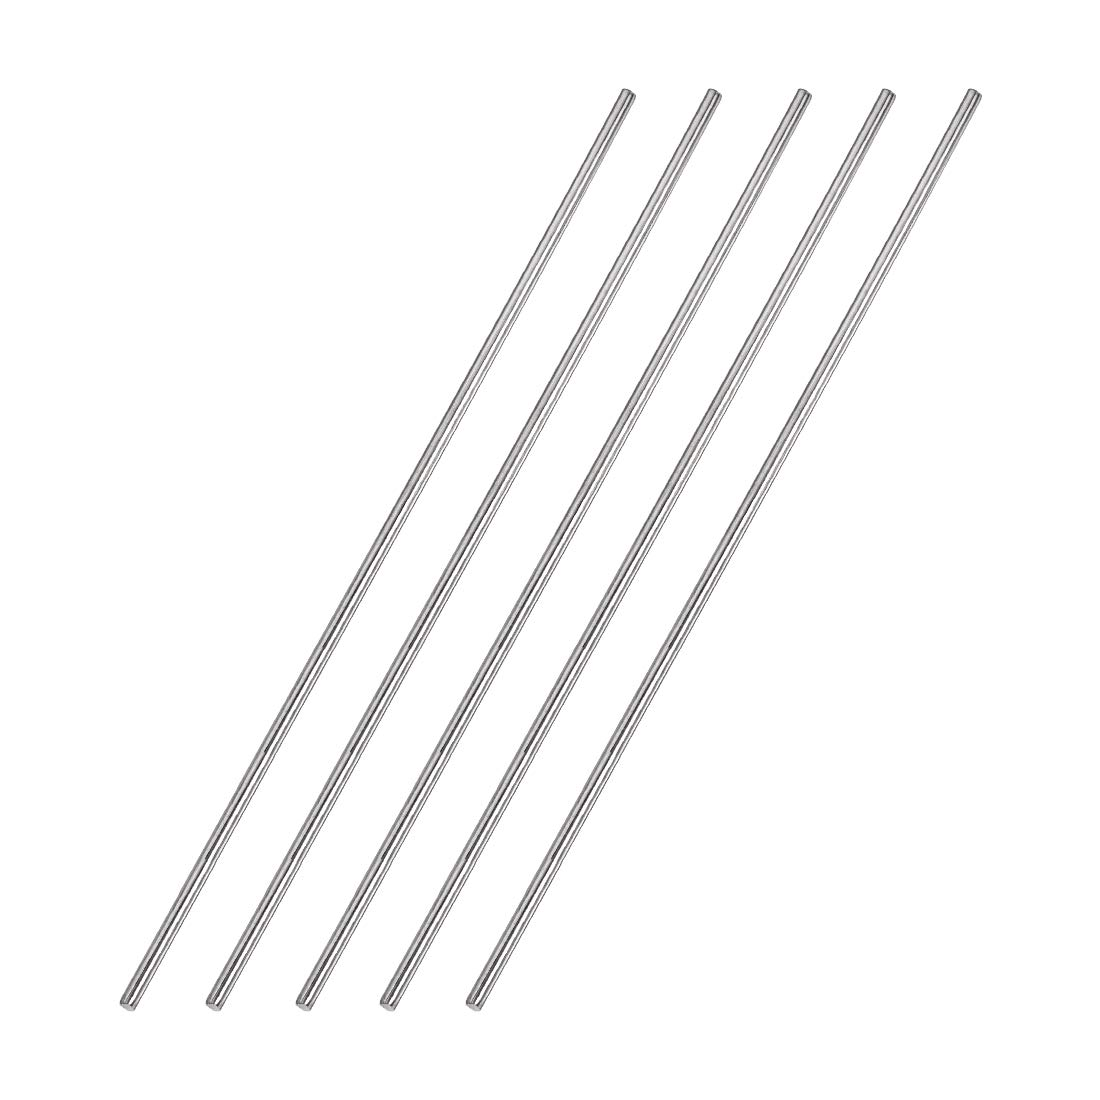 5pcs 1mm x 150mm 304 Stainless Steel Solid Round Rod for DIY Craft